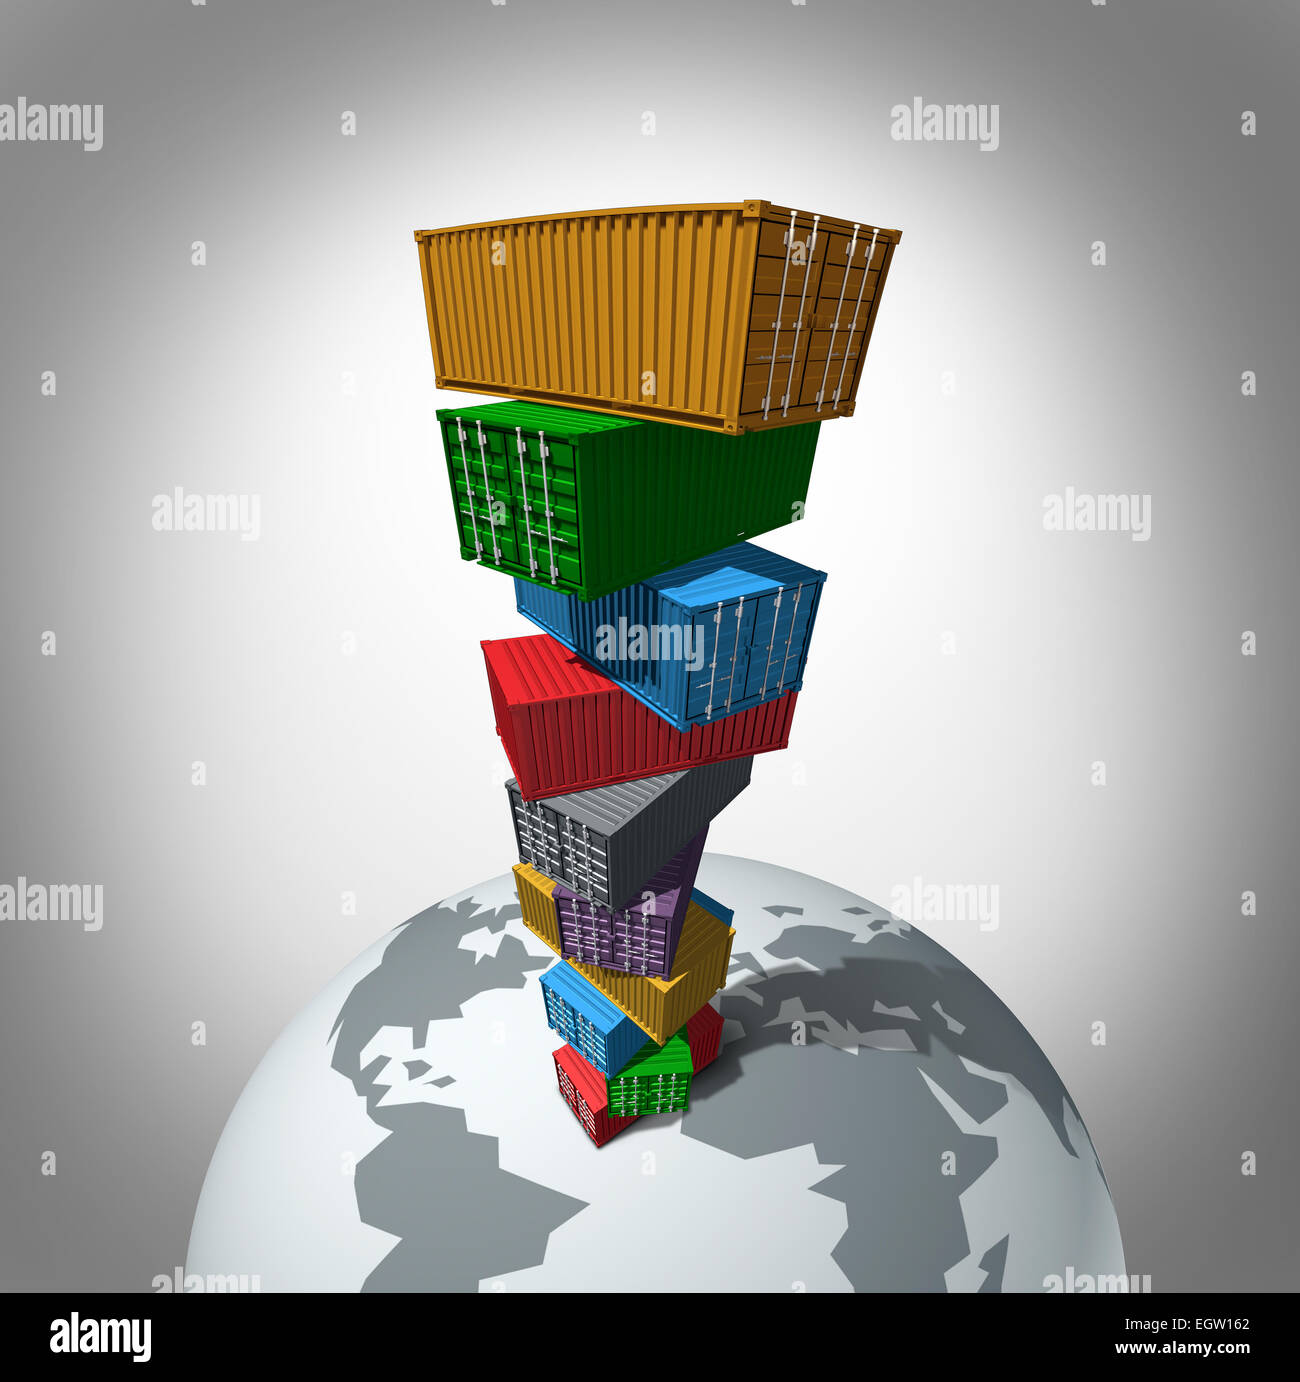 Global cargo transportation concept as a high stack of transport containers towering over the planet as a symbol - Stock Image